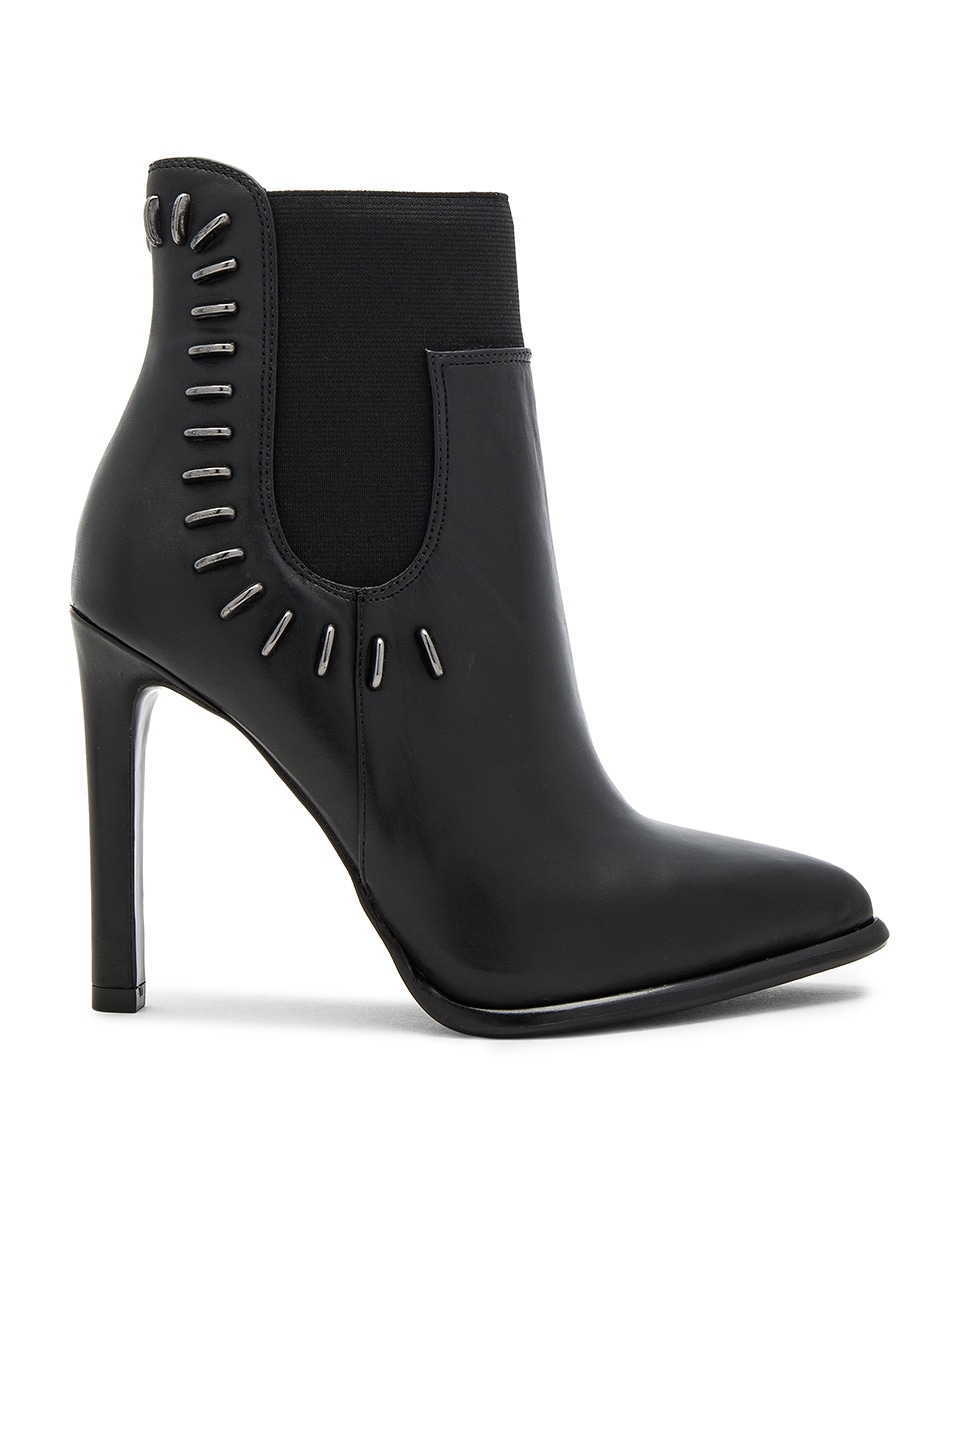 KENDALL + KYLIE Cassidy Bootie in Black & Black